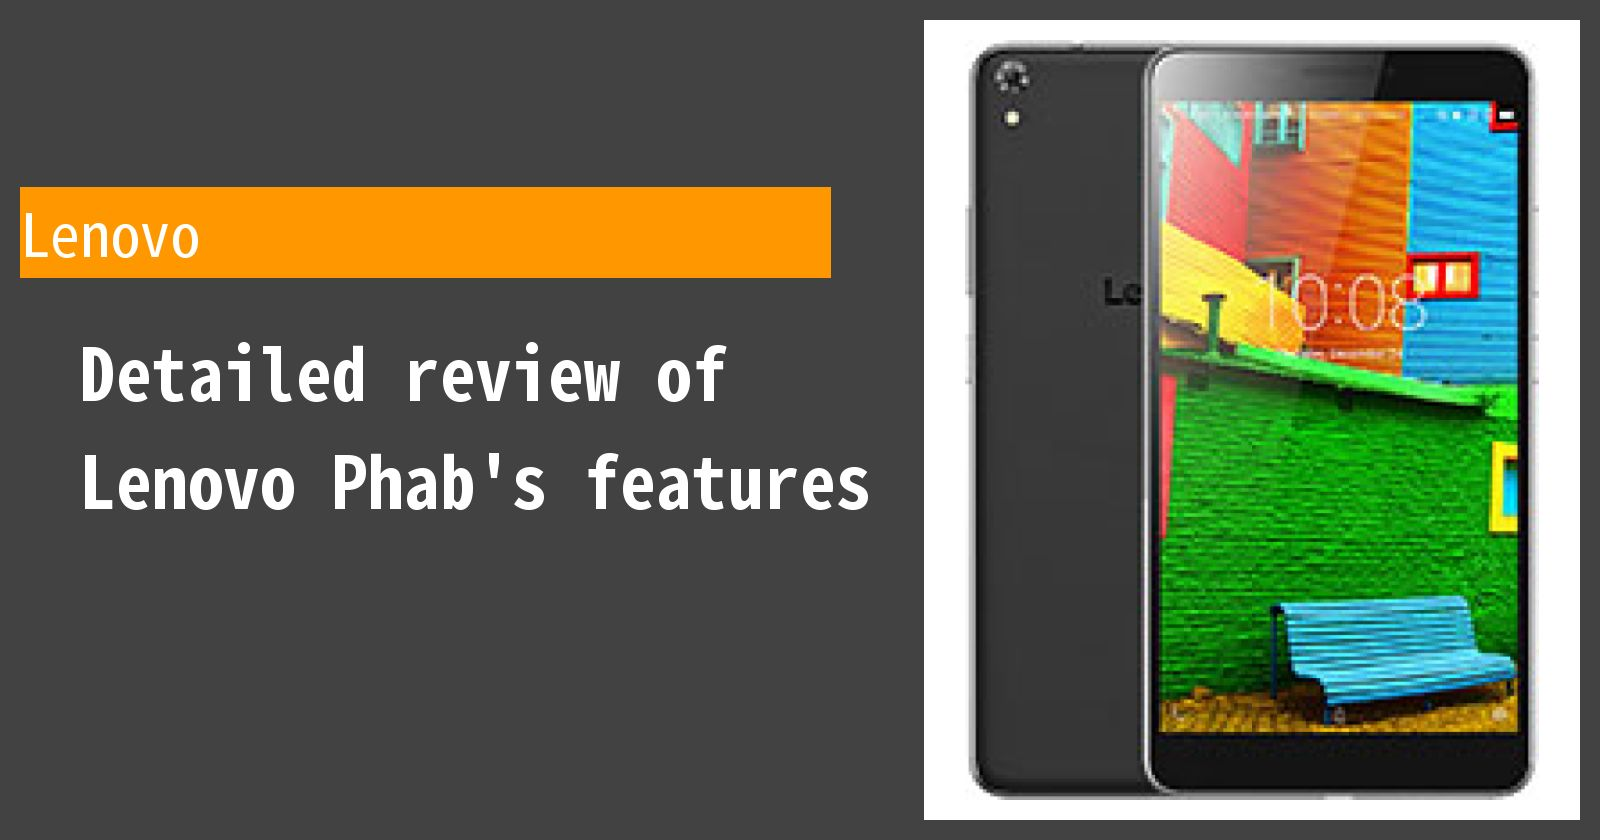 Detailed review of Lenovo Phab's features